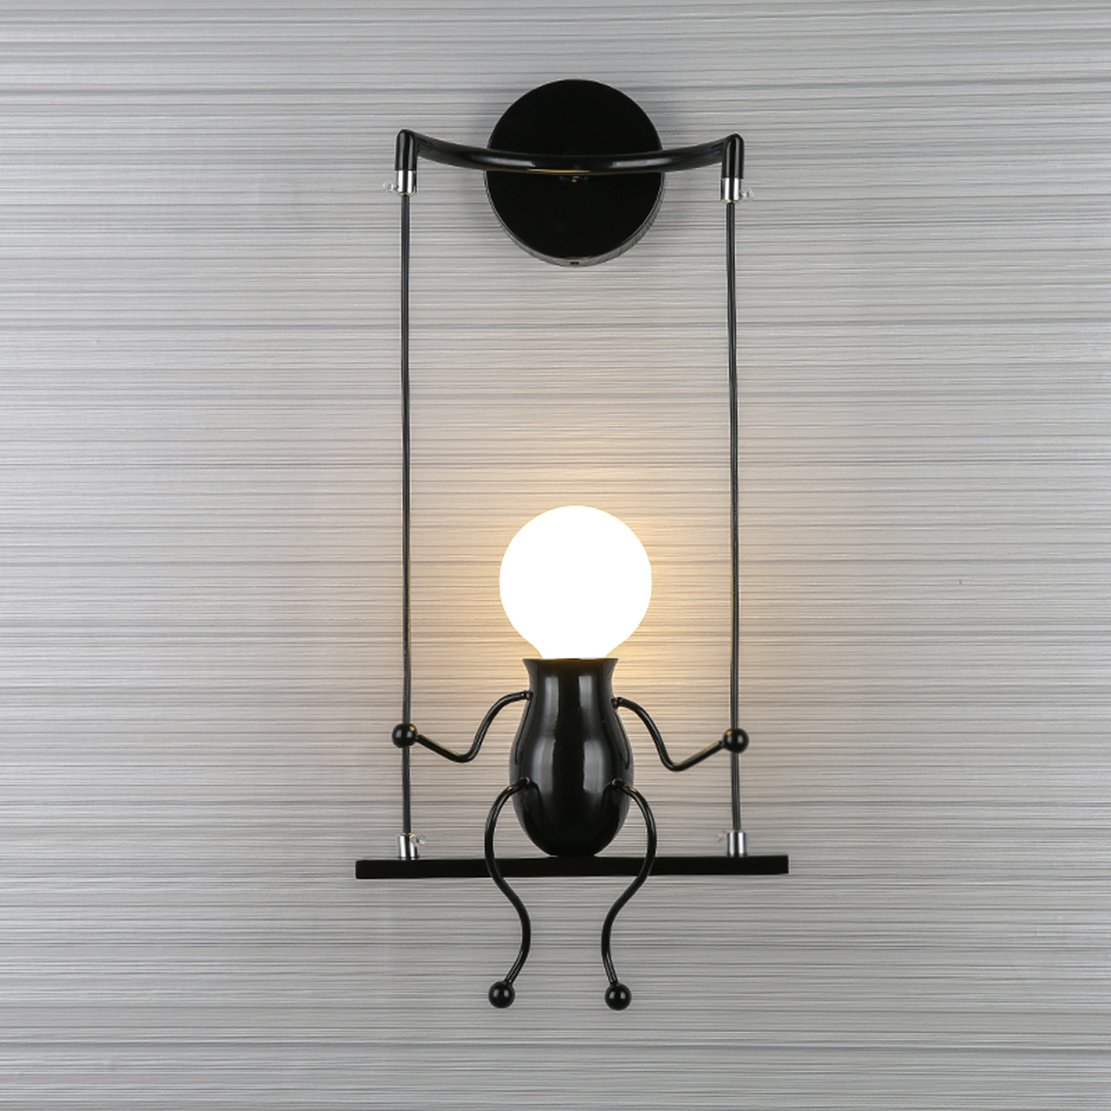 Mini-People-LED-Lamp-Man-Sitting-On-Swing-Lamp-for-Wall